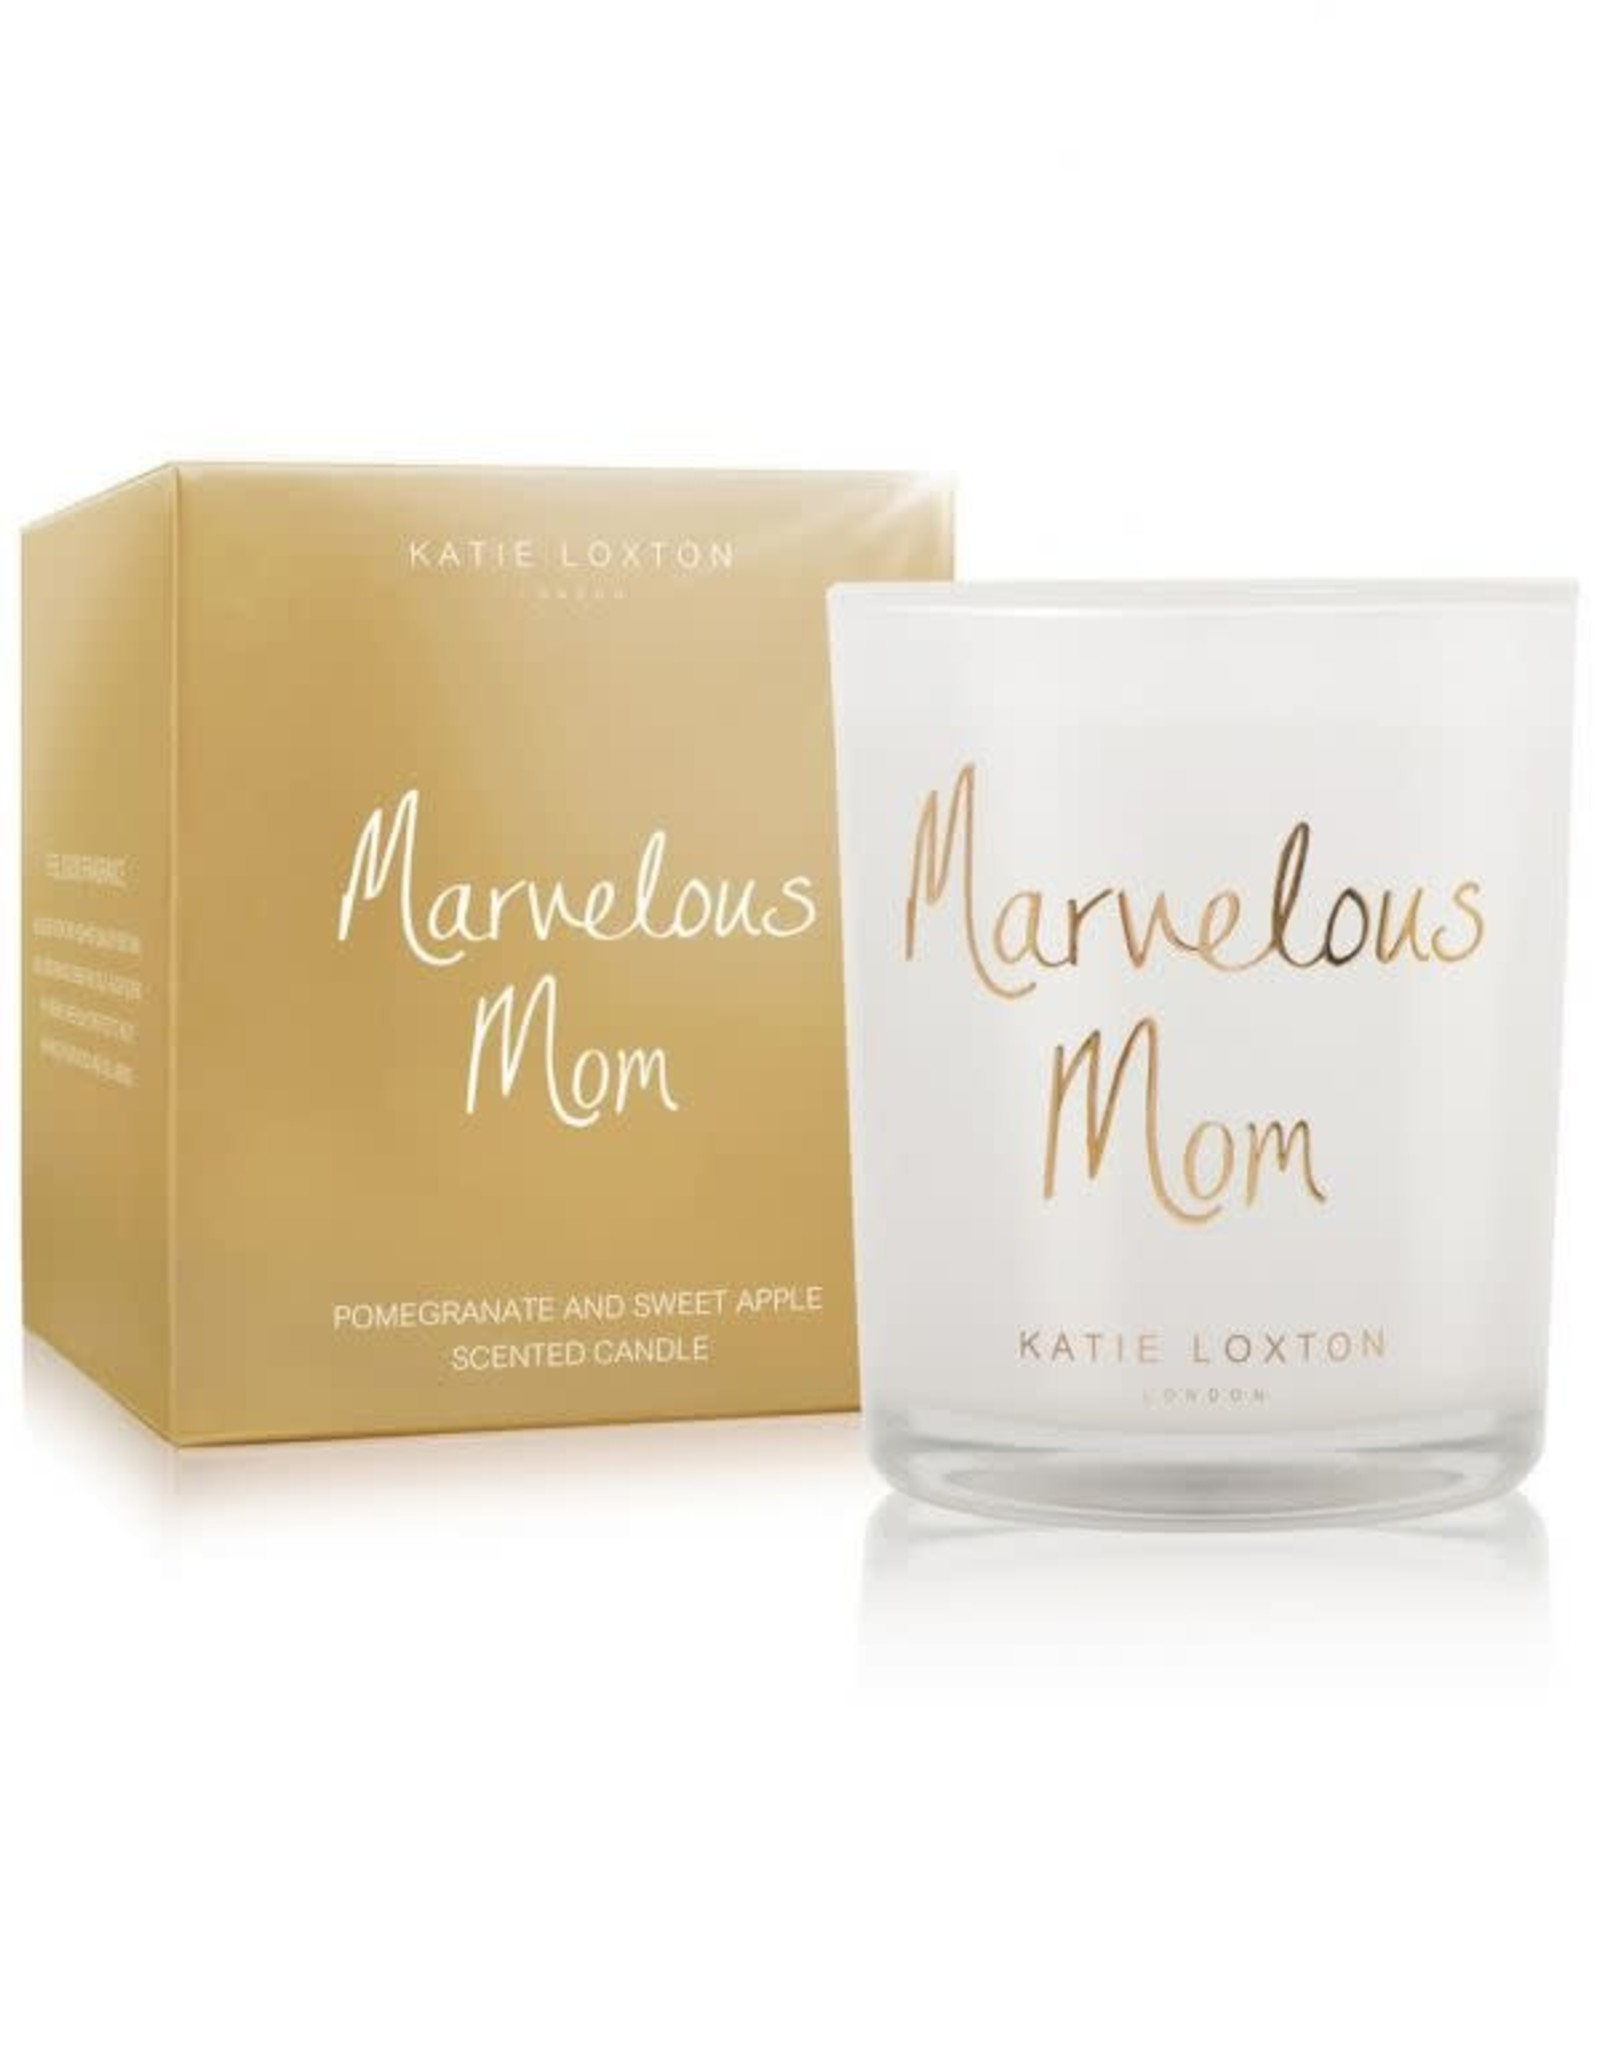 Katie Loxton Metallic Candle-Marvelous Mom Pomegranate and Sweet Apple